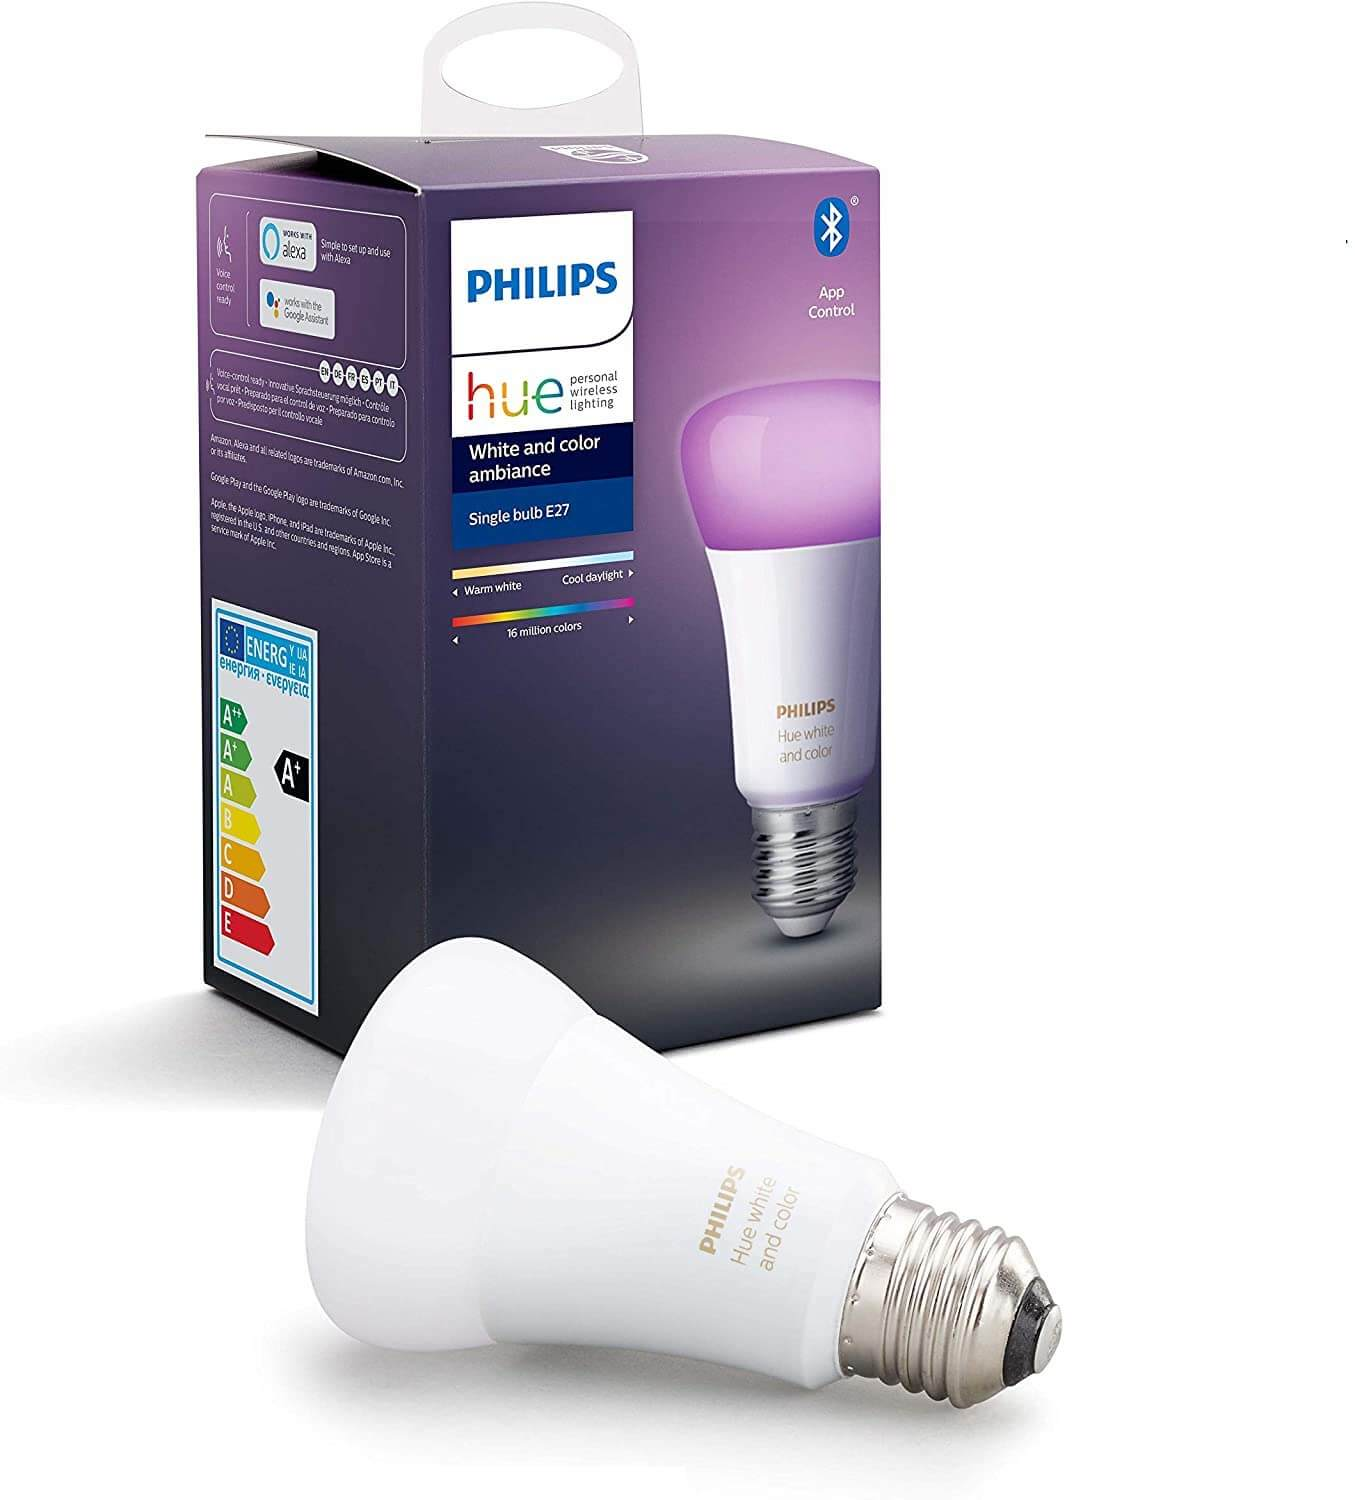 Philips hue color white ambiance e27 lamp